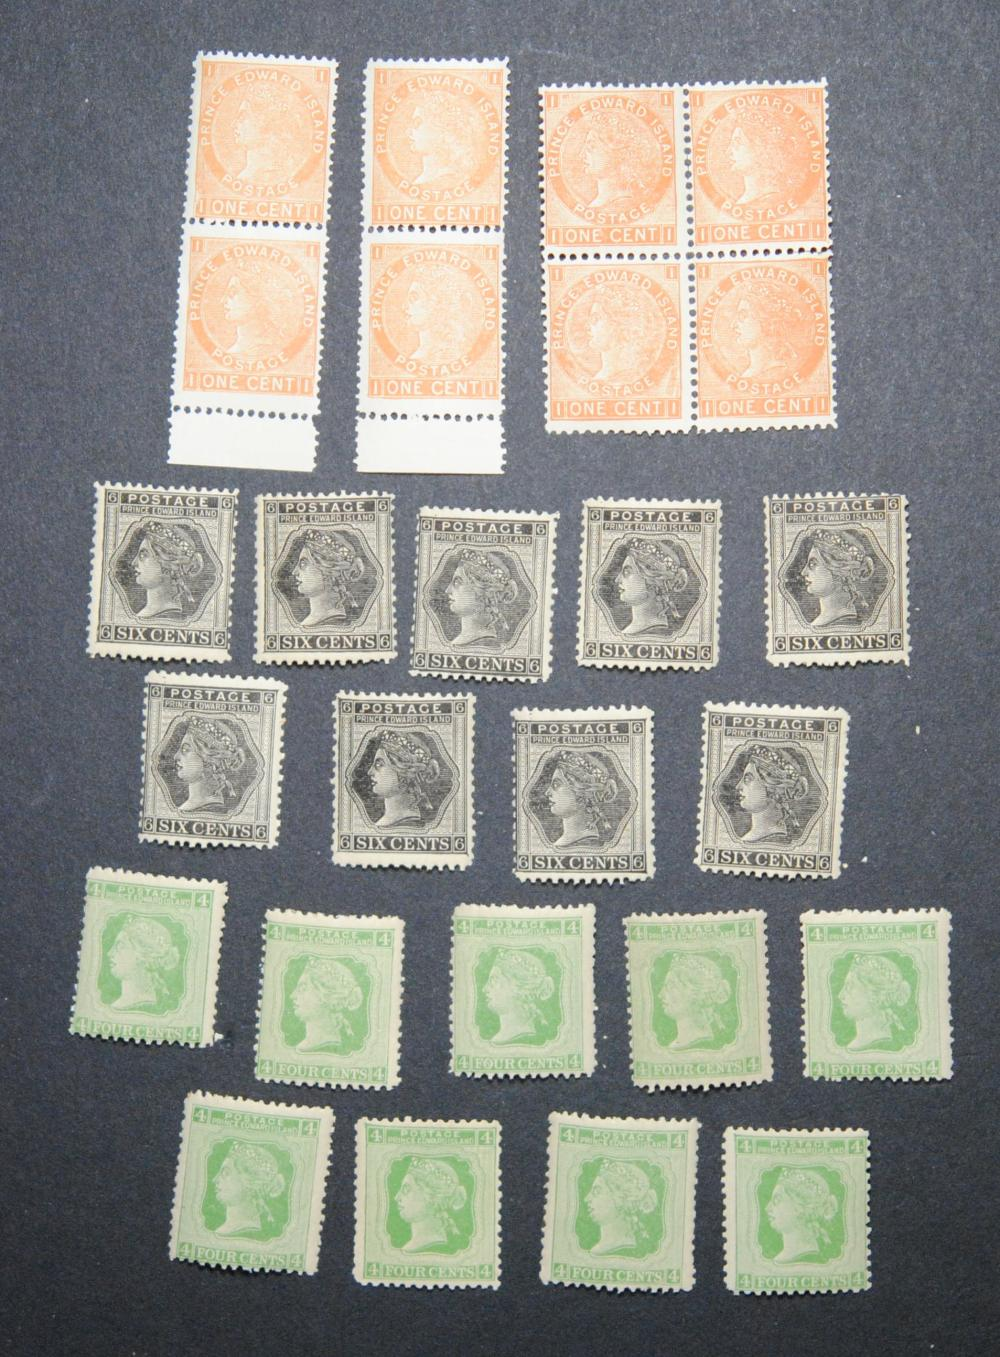 Canada Prince Edward Island Victoria Stamp Collection